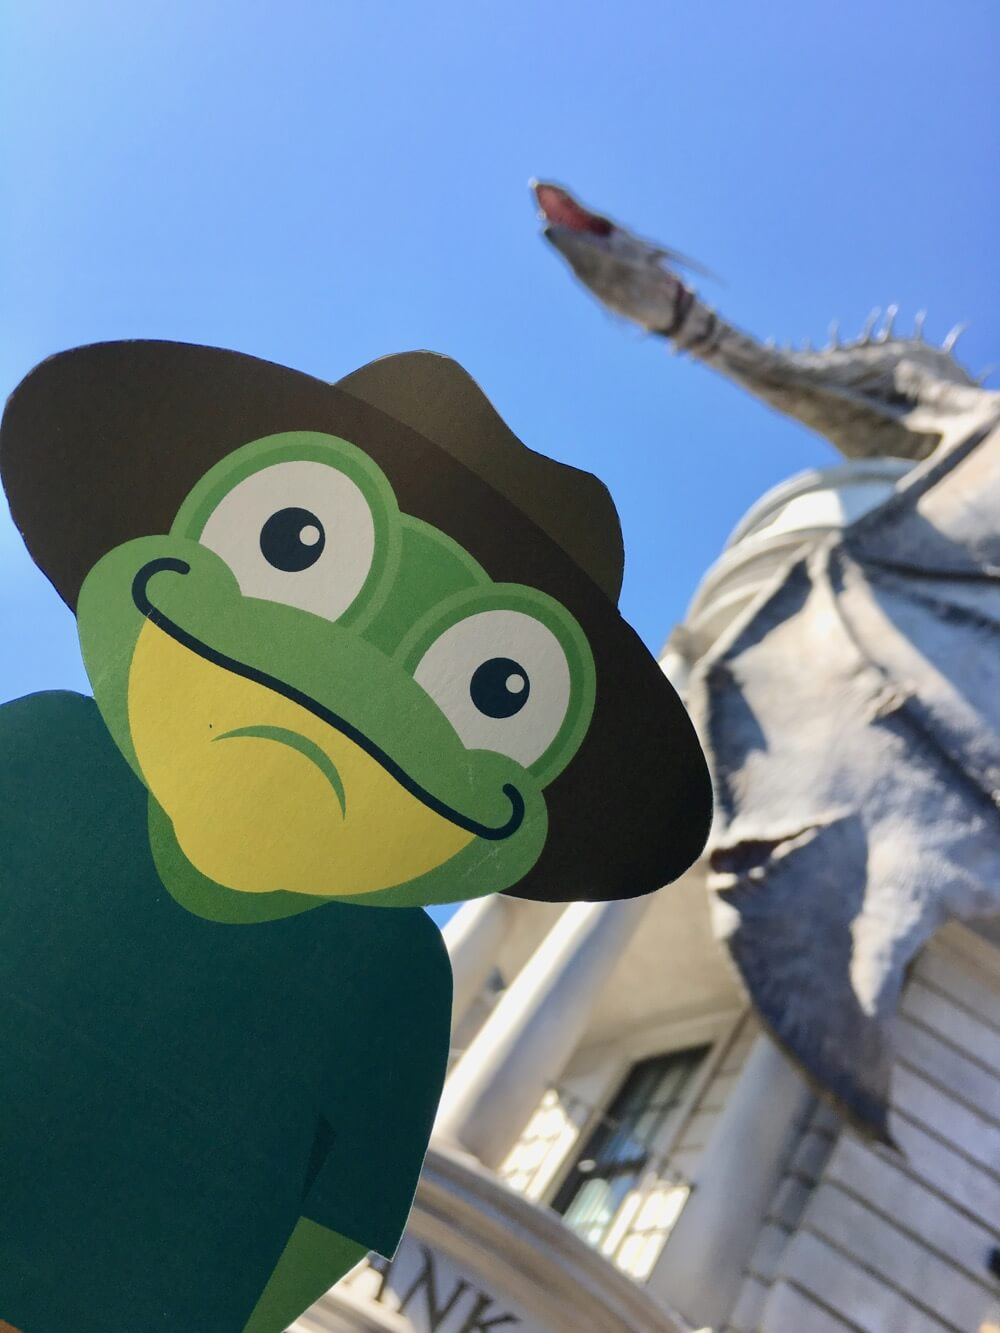 Best Selfie Spots at Universal Orlando - Dragon